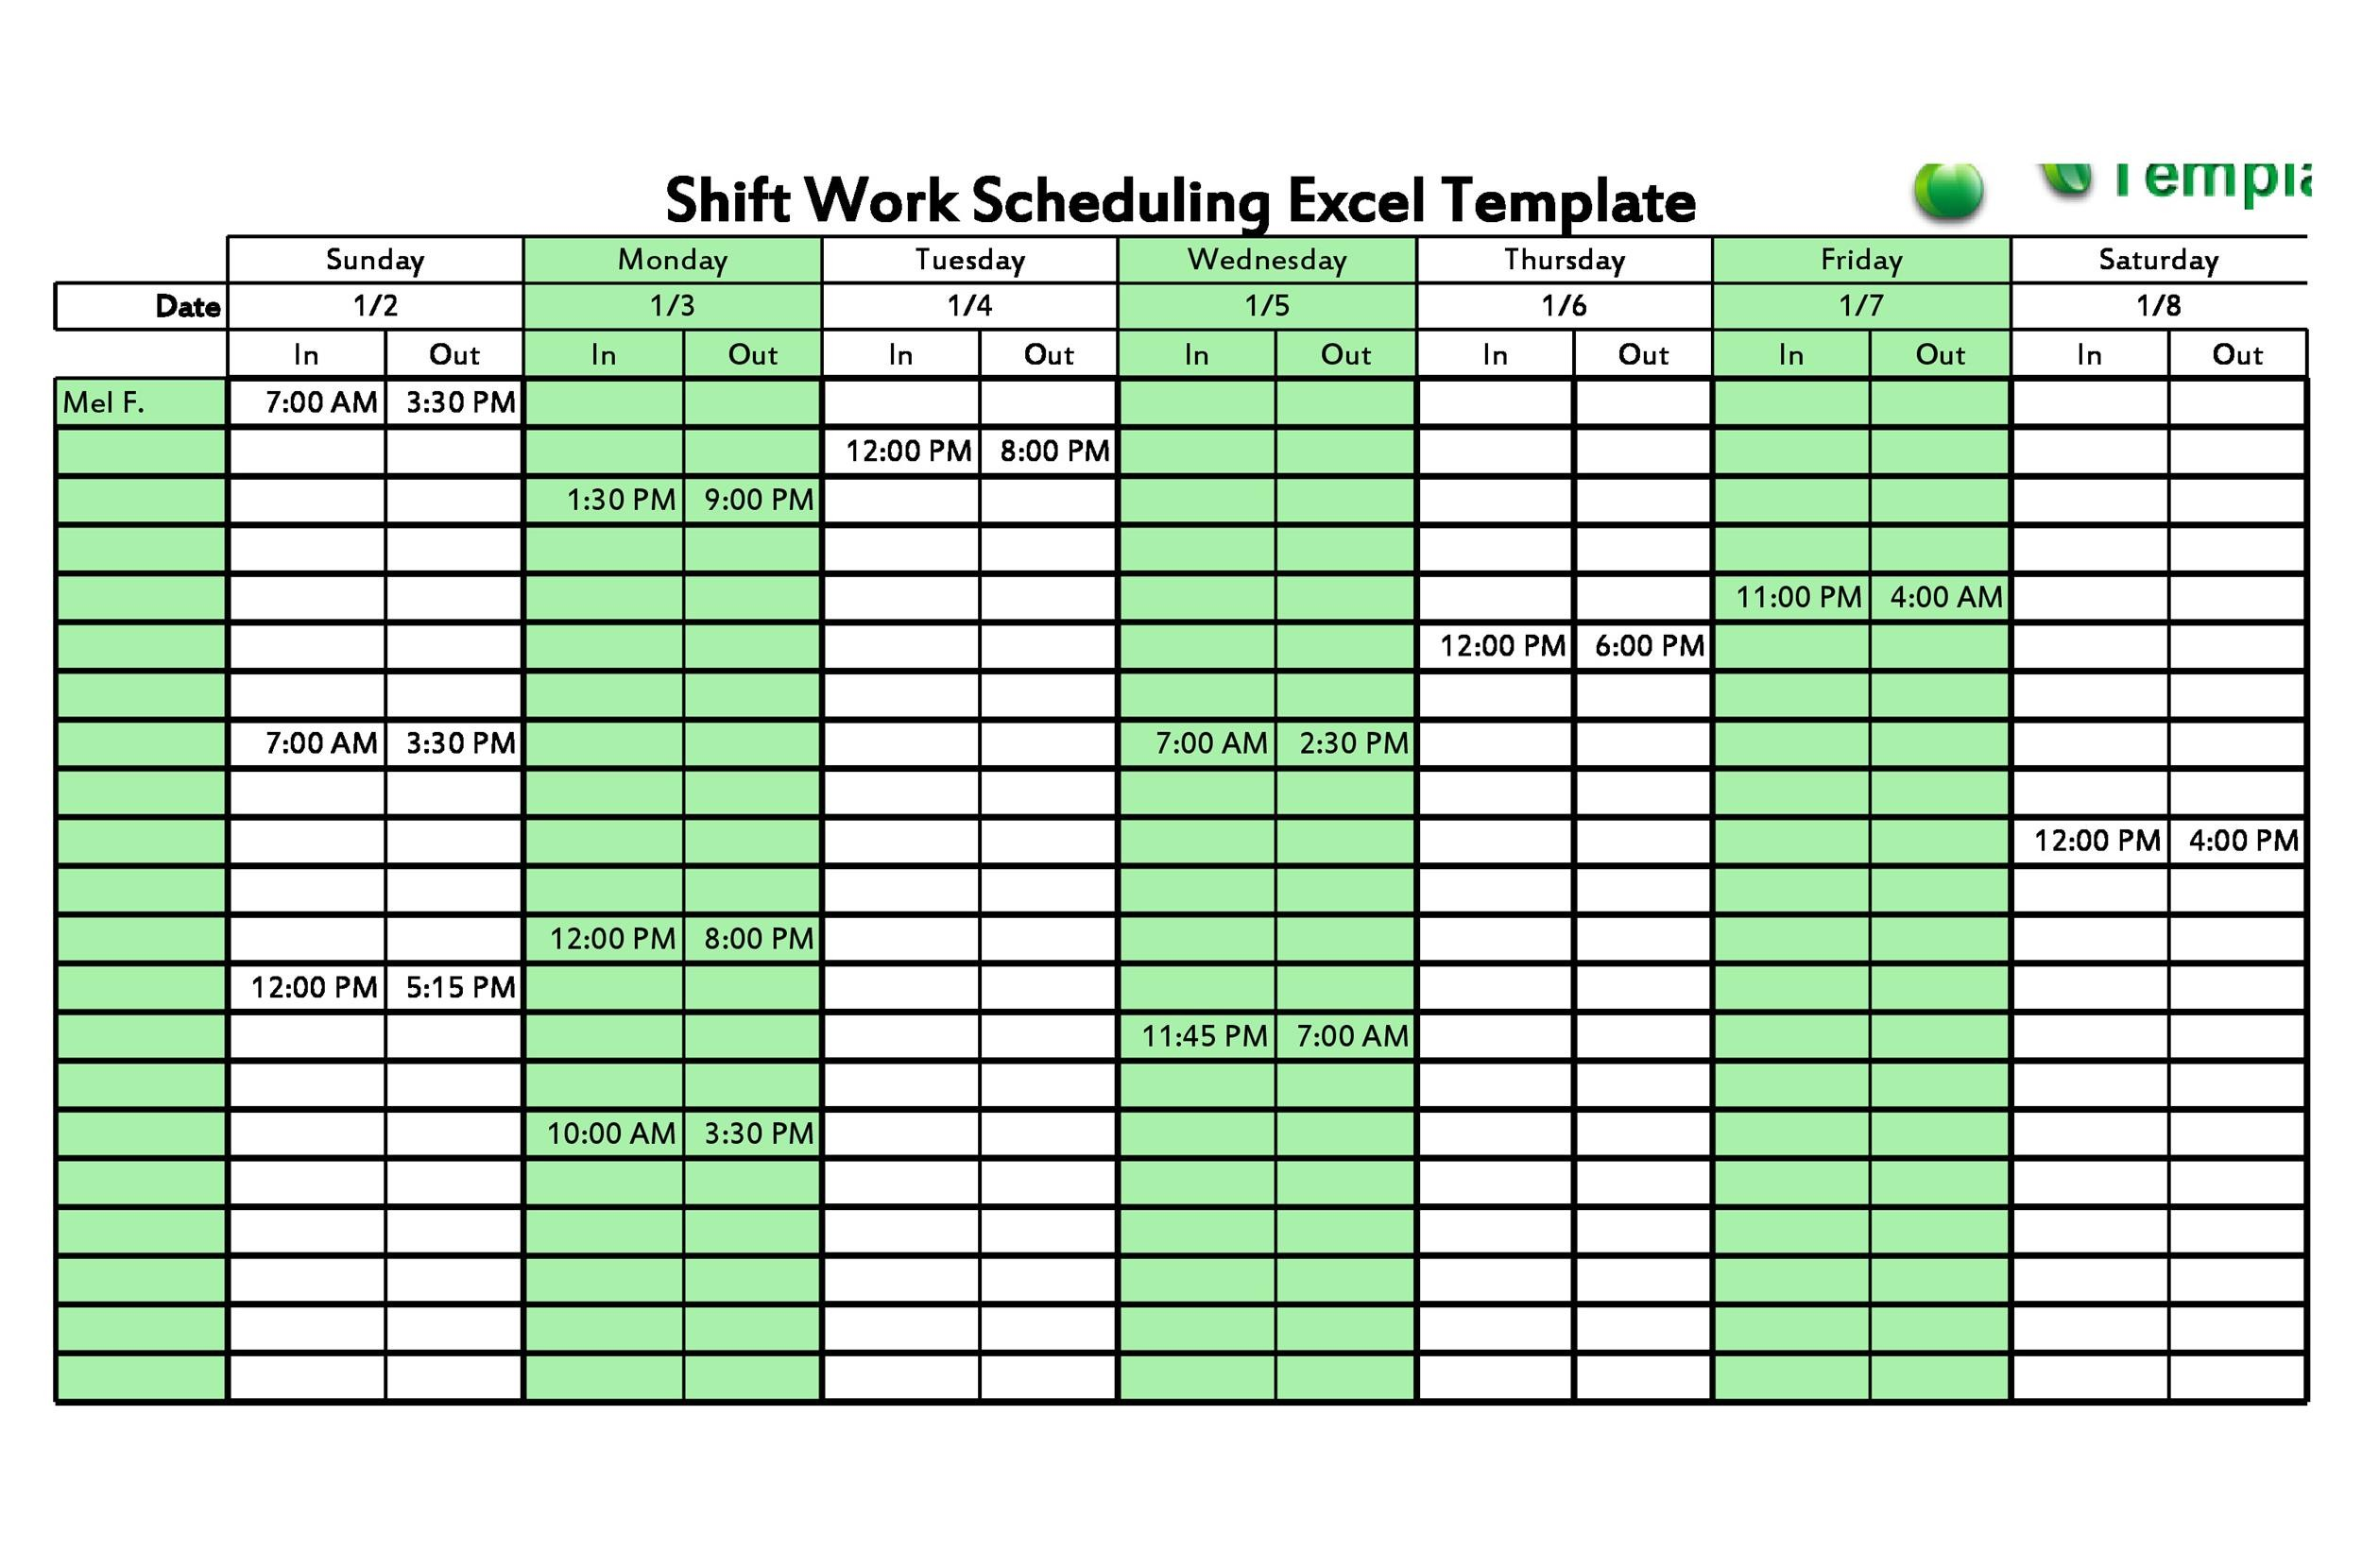 30 Dupont Shift Schedule Templats for any Company [Free] ᐅ ...